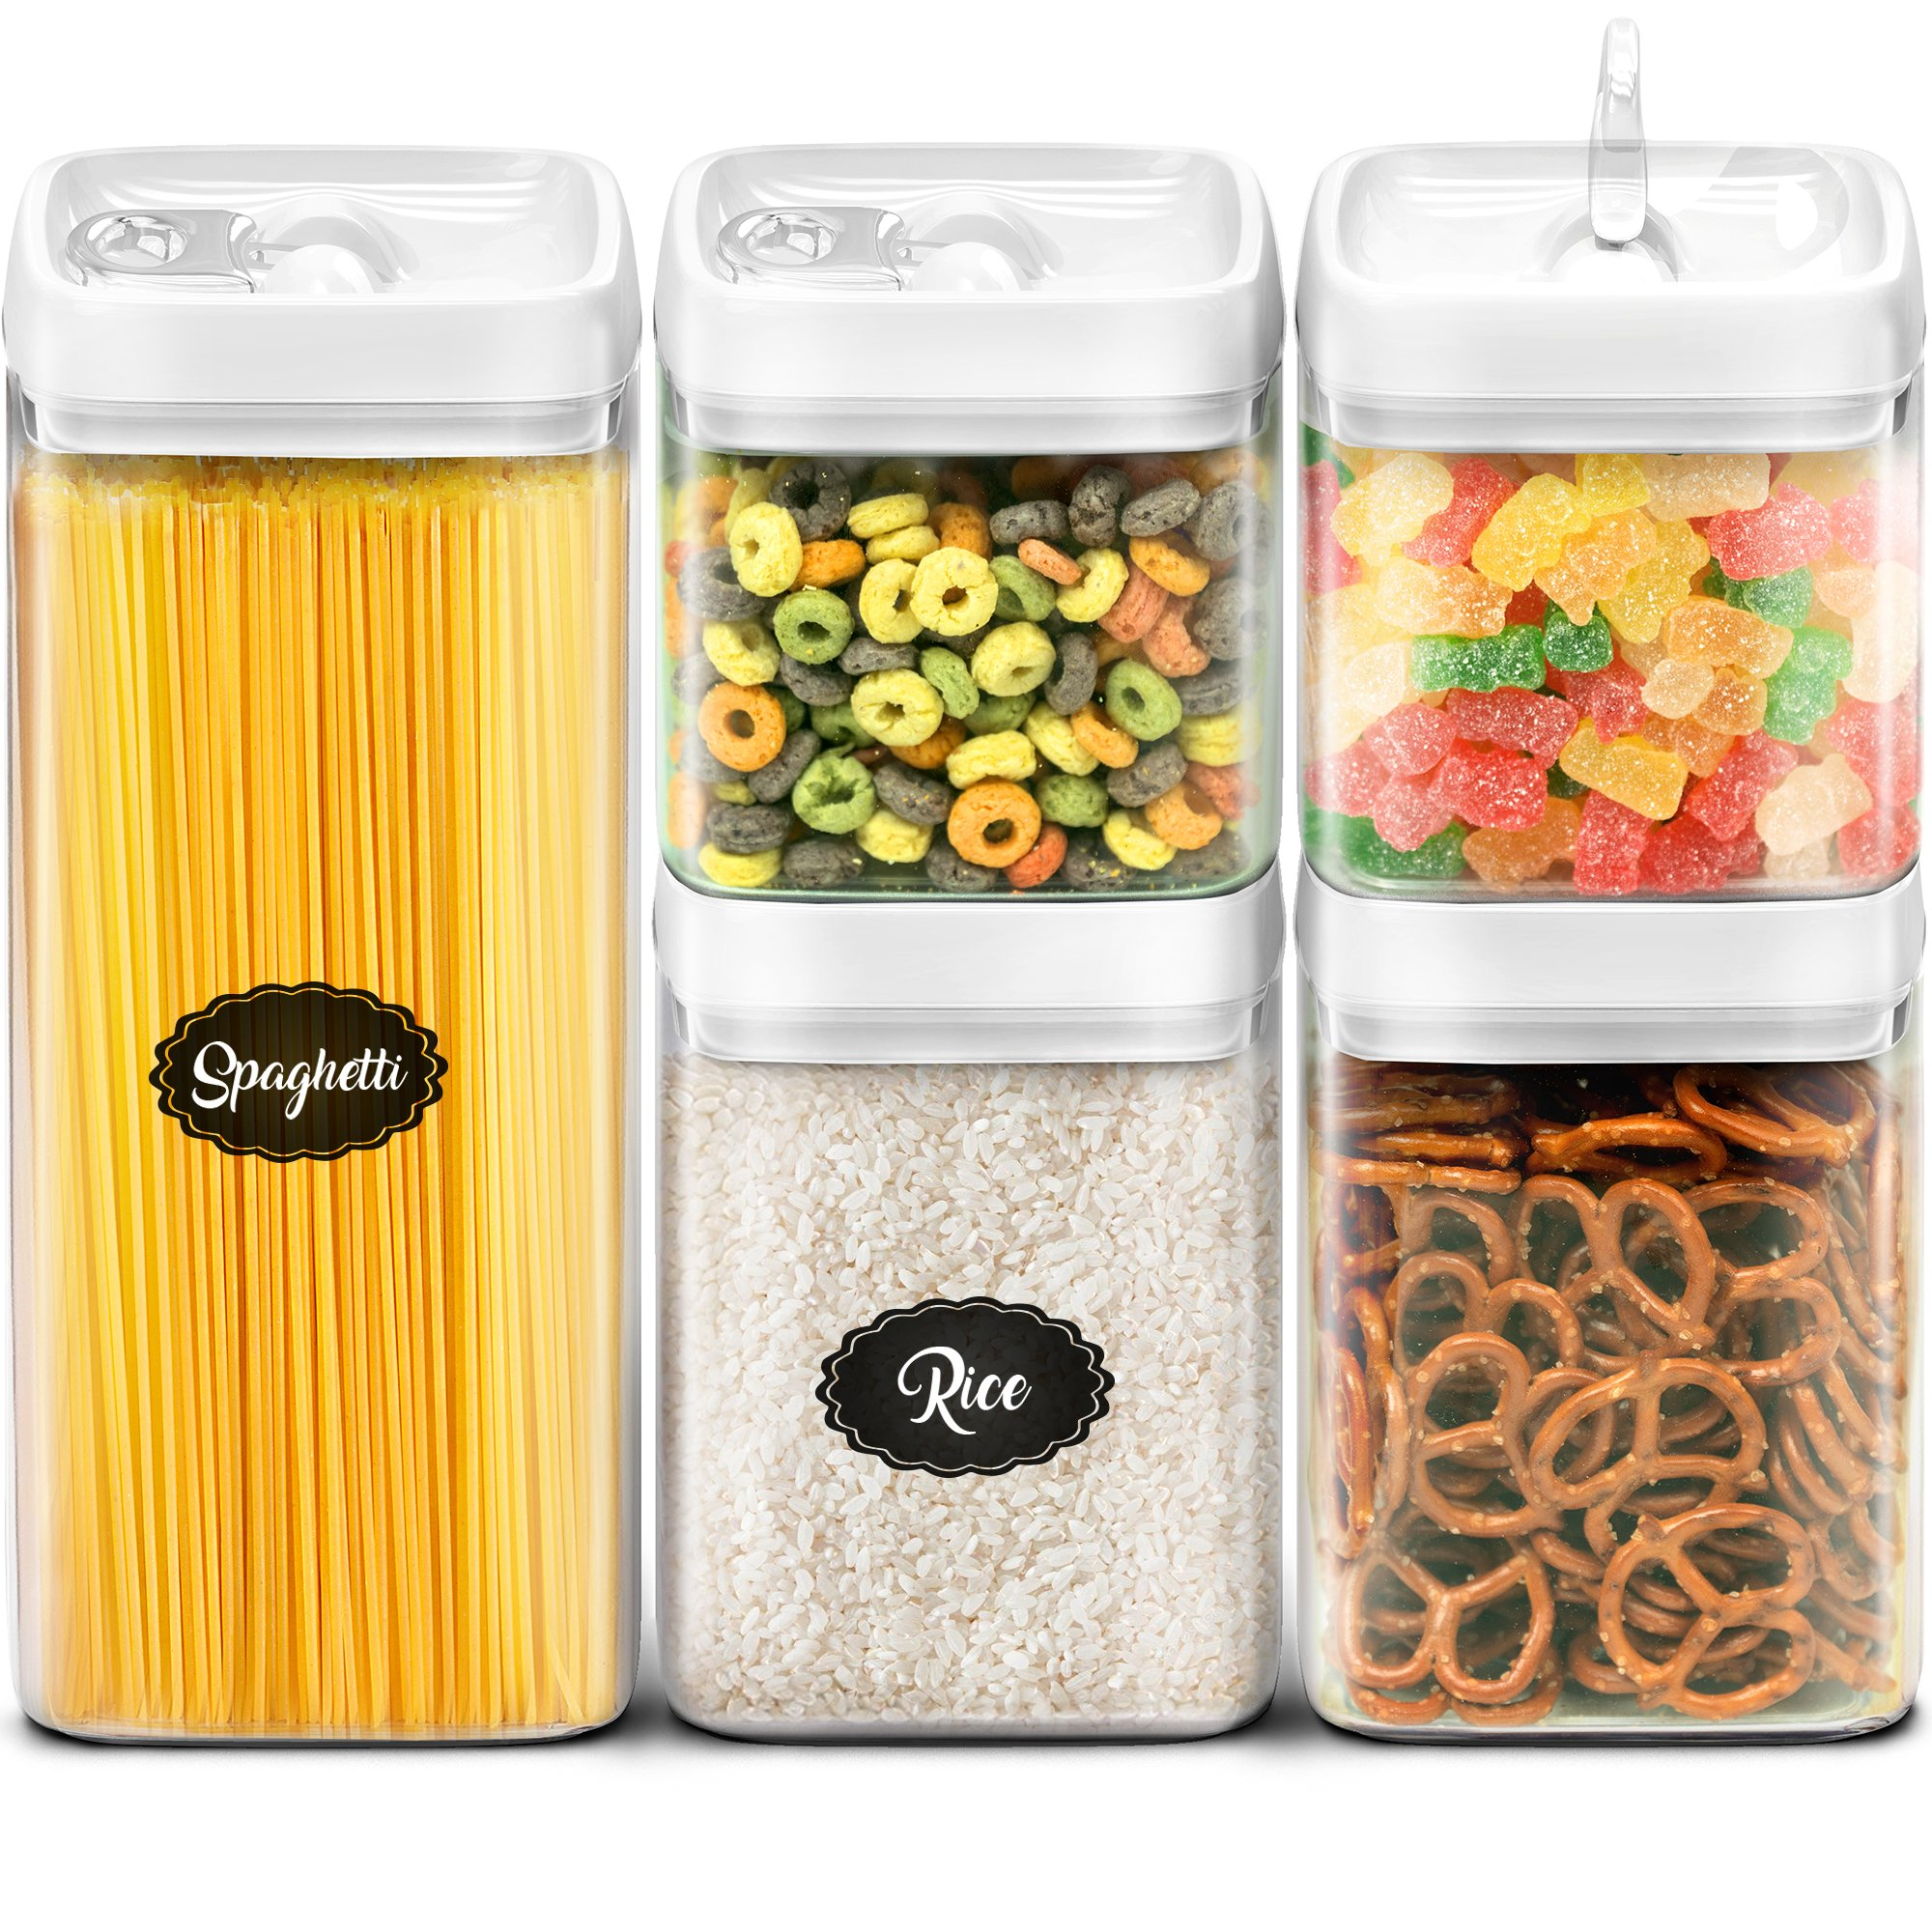 Airtight Storage Containers Set   Best Kitchen Dry Food Containers With  Lids   Clear Plastic Food Storage Containers ...